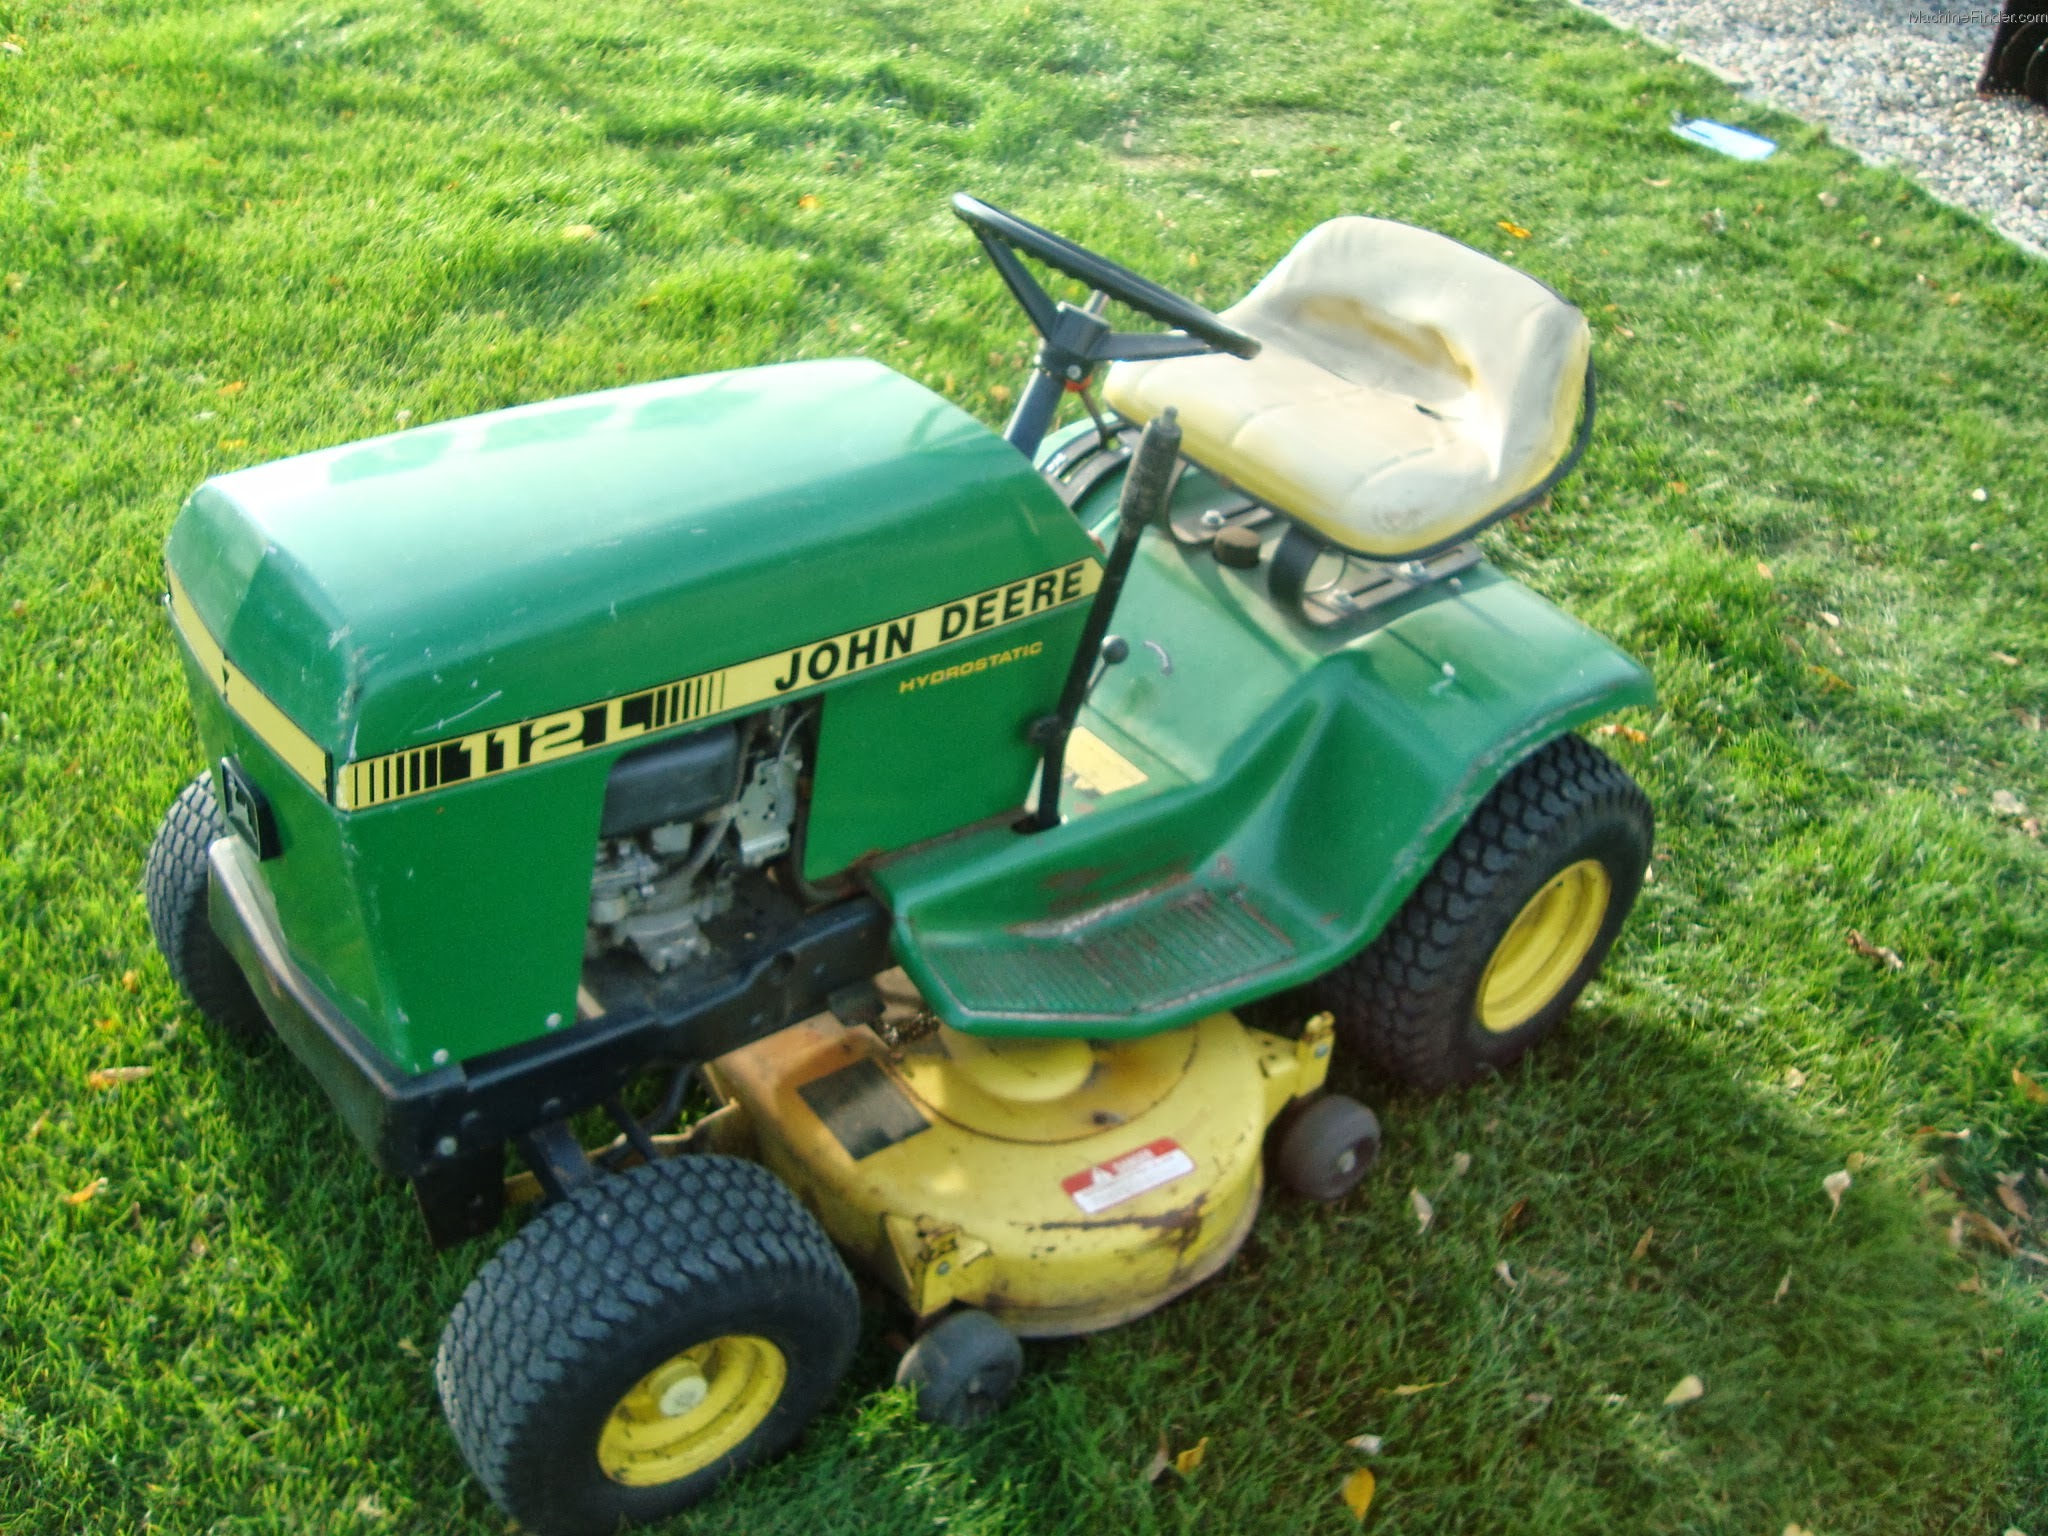 deere murray collection managing parts your garden manuals the lawn john best tractor mower